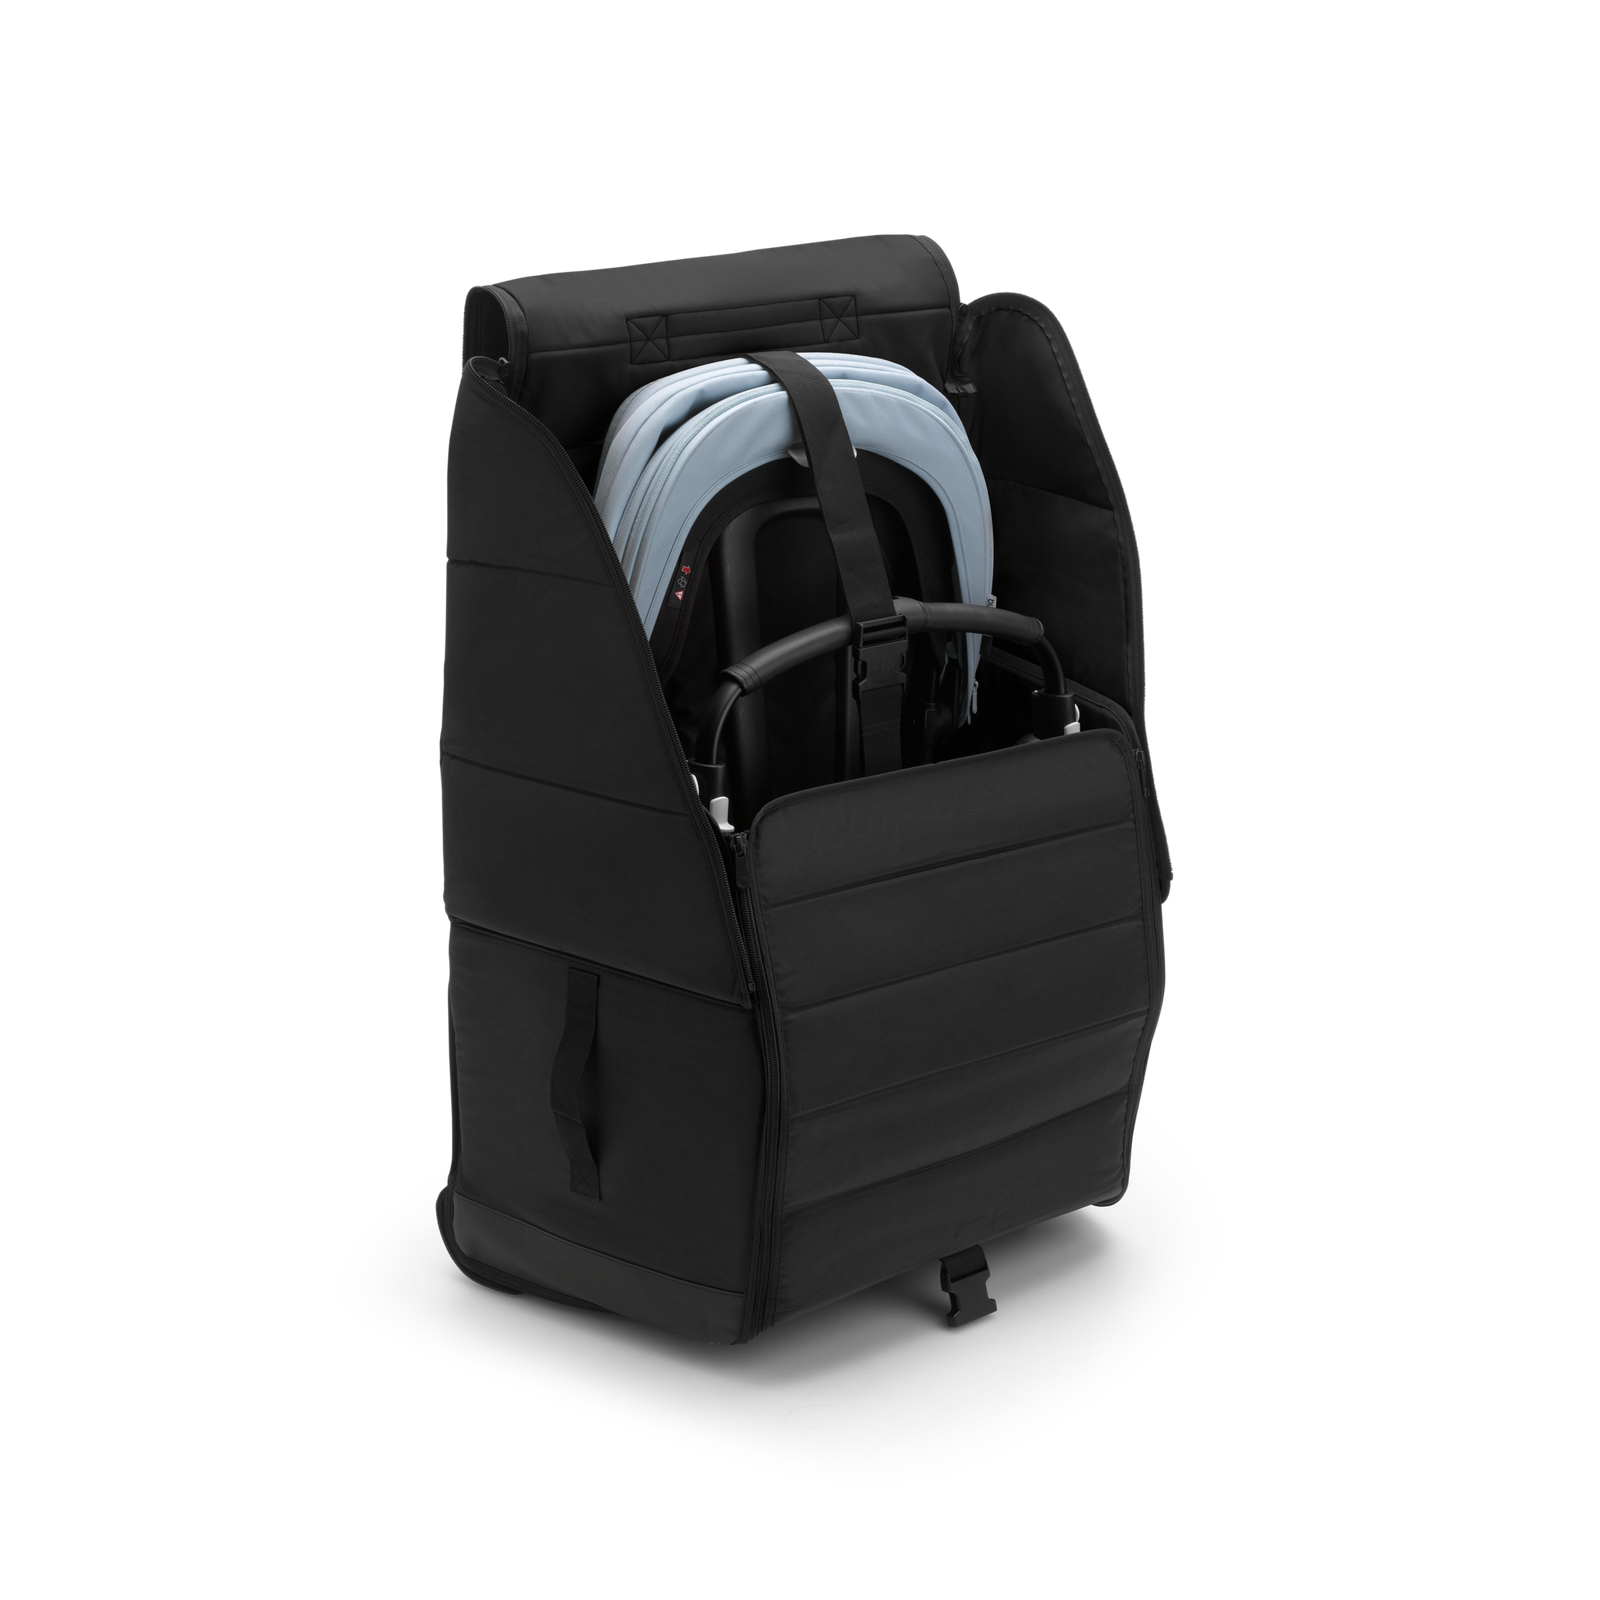 le sac de transport confort Bugaboo